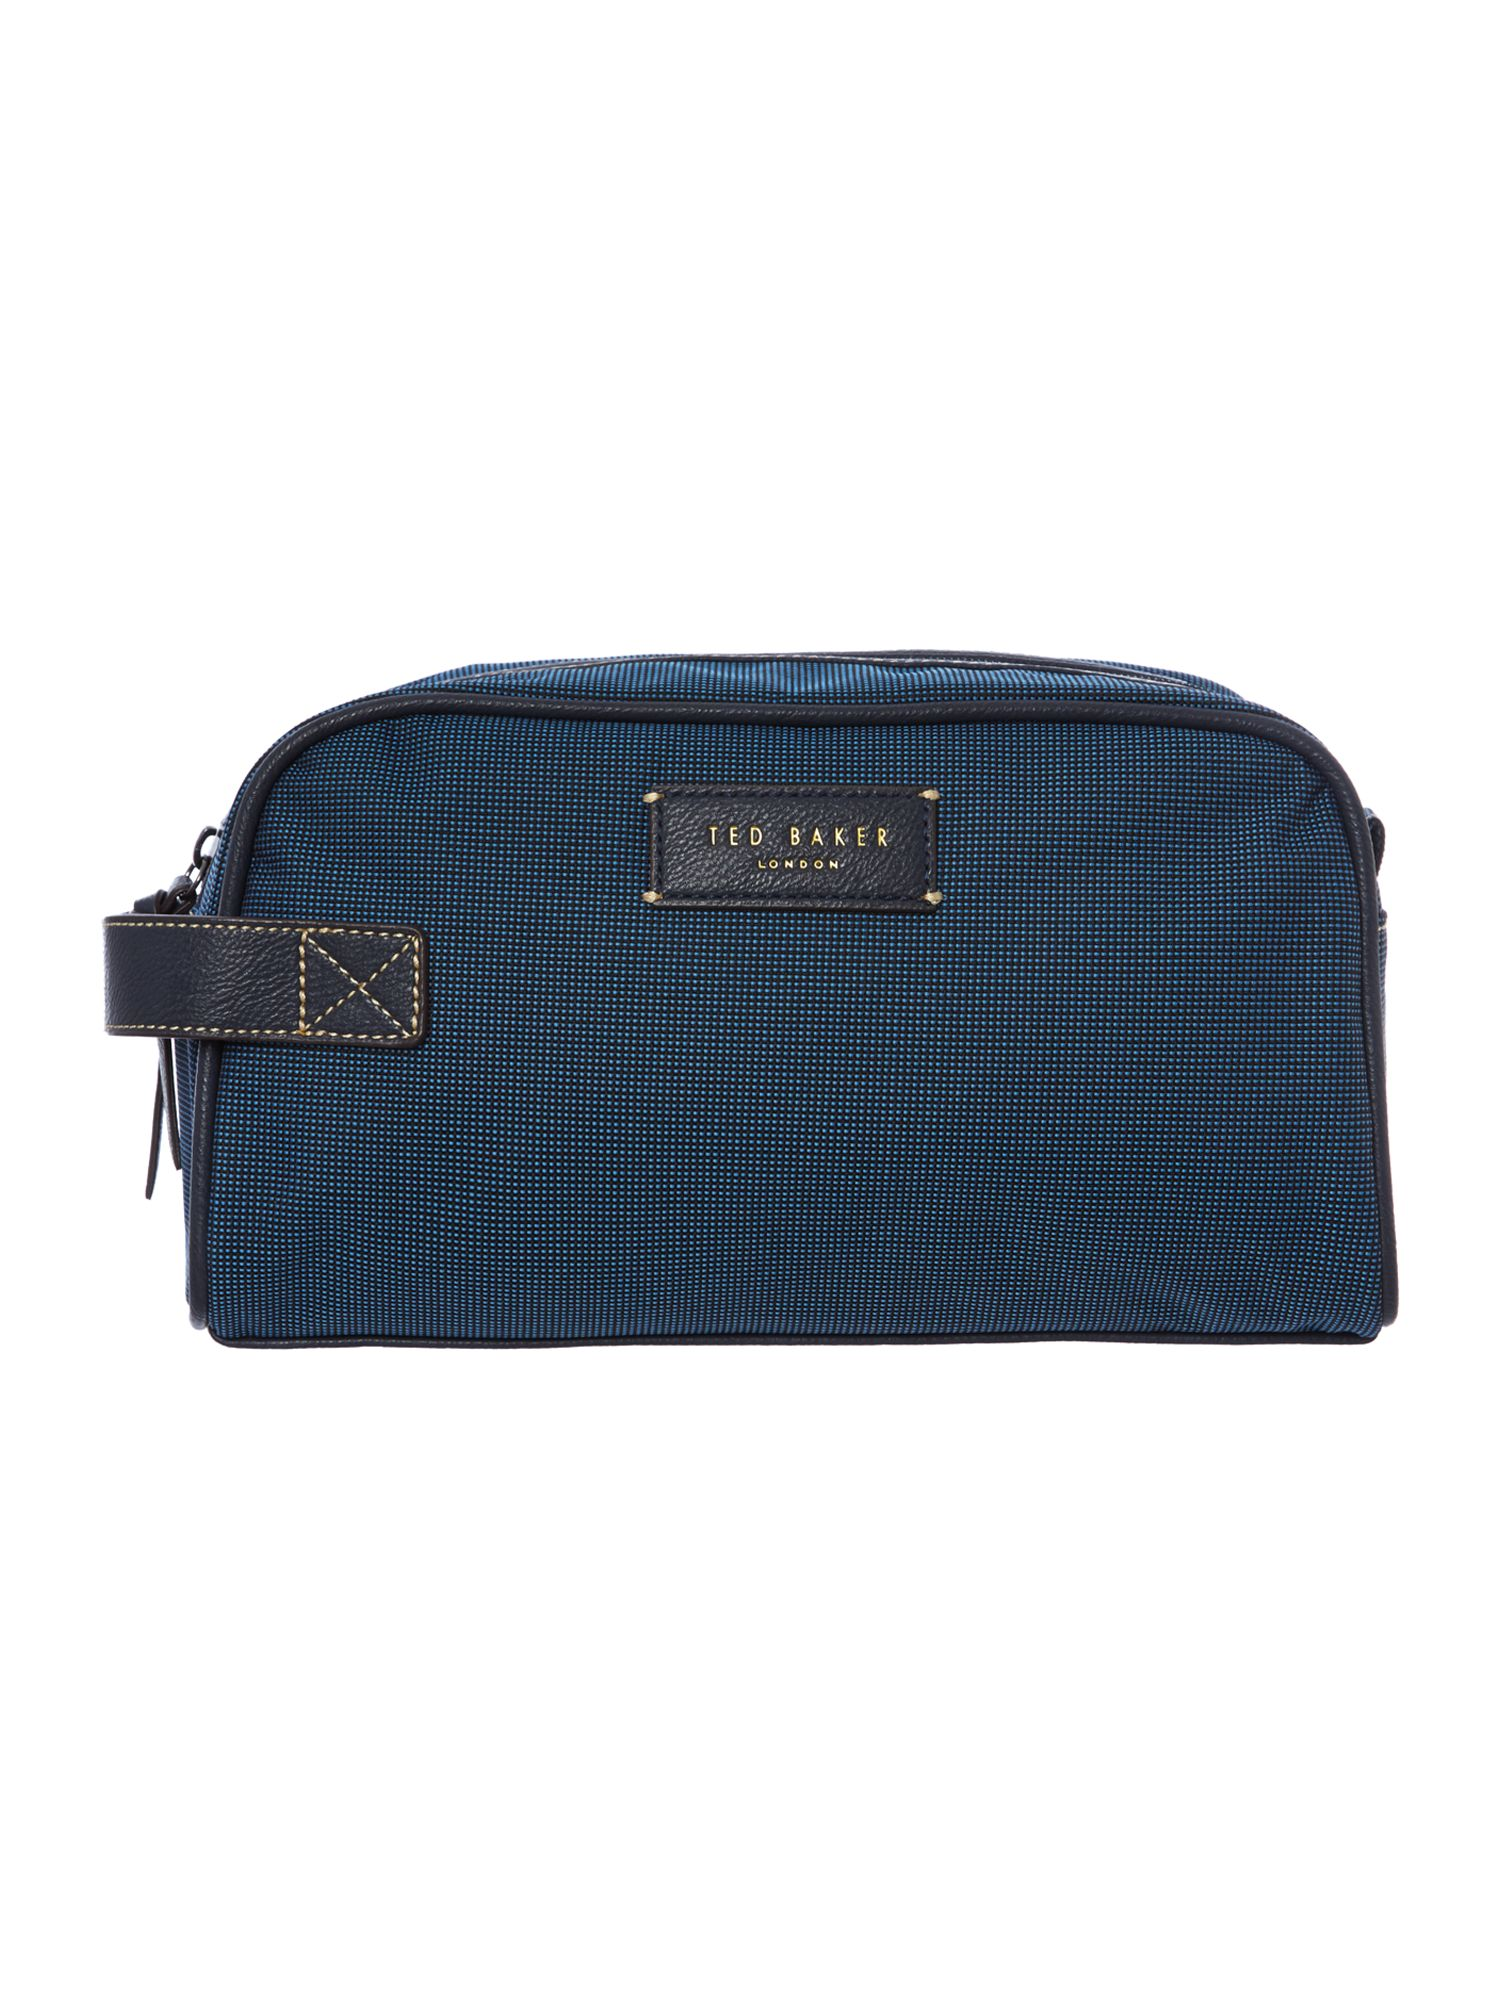 Nylon washbag with towell